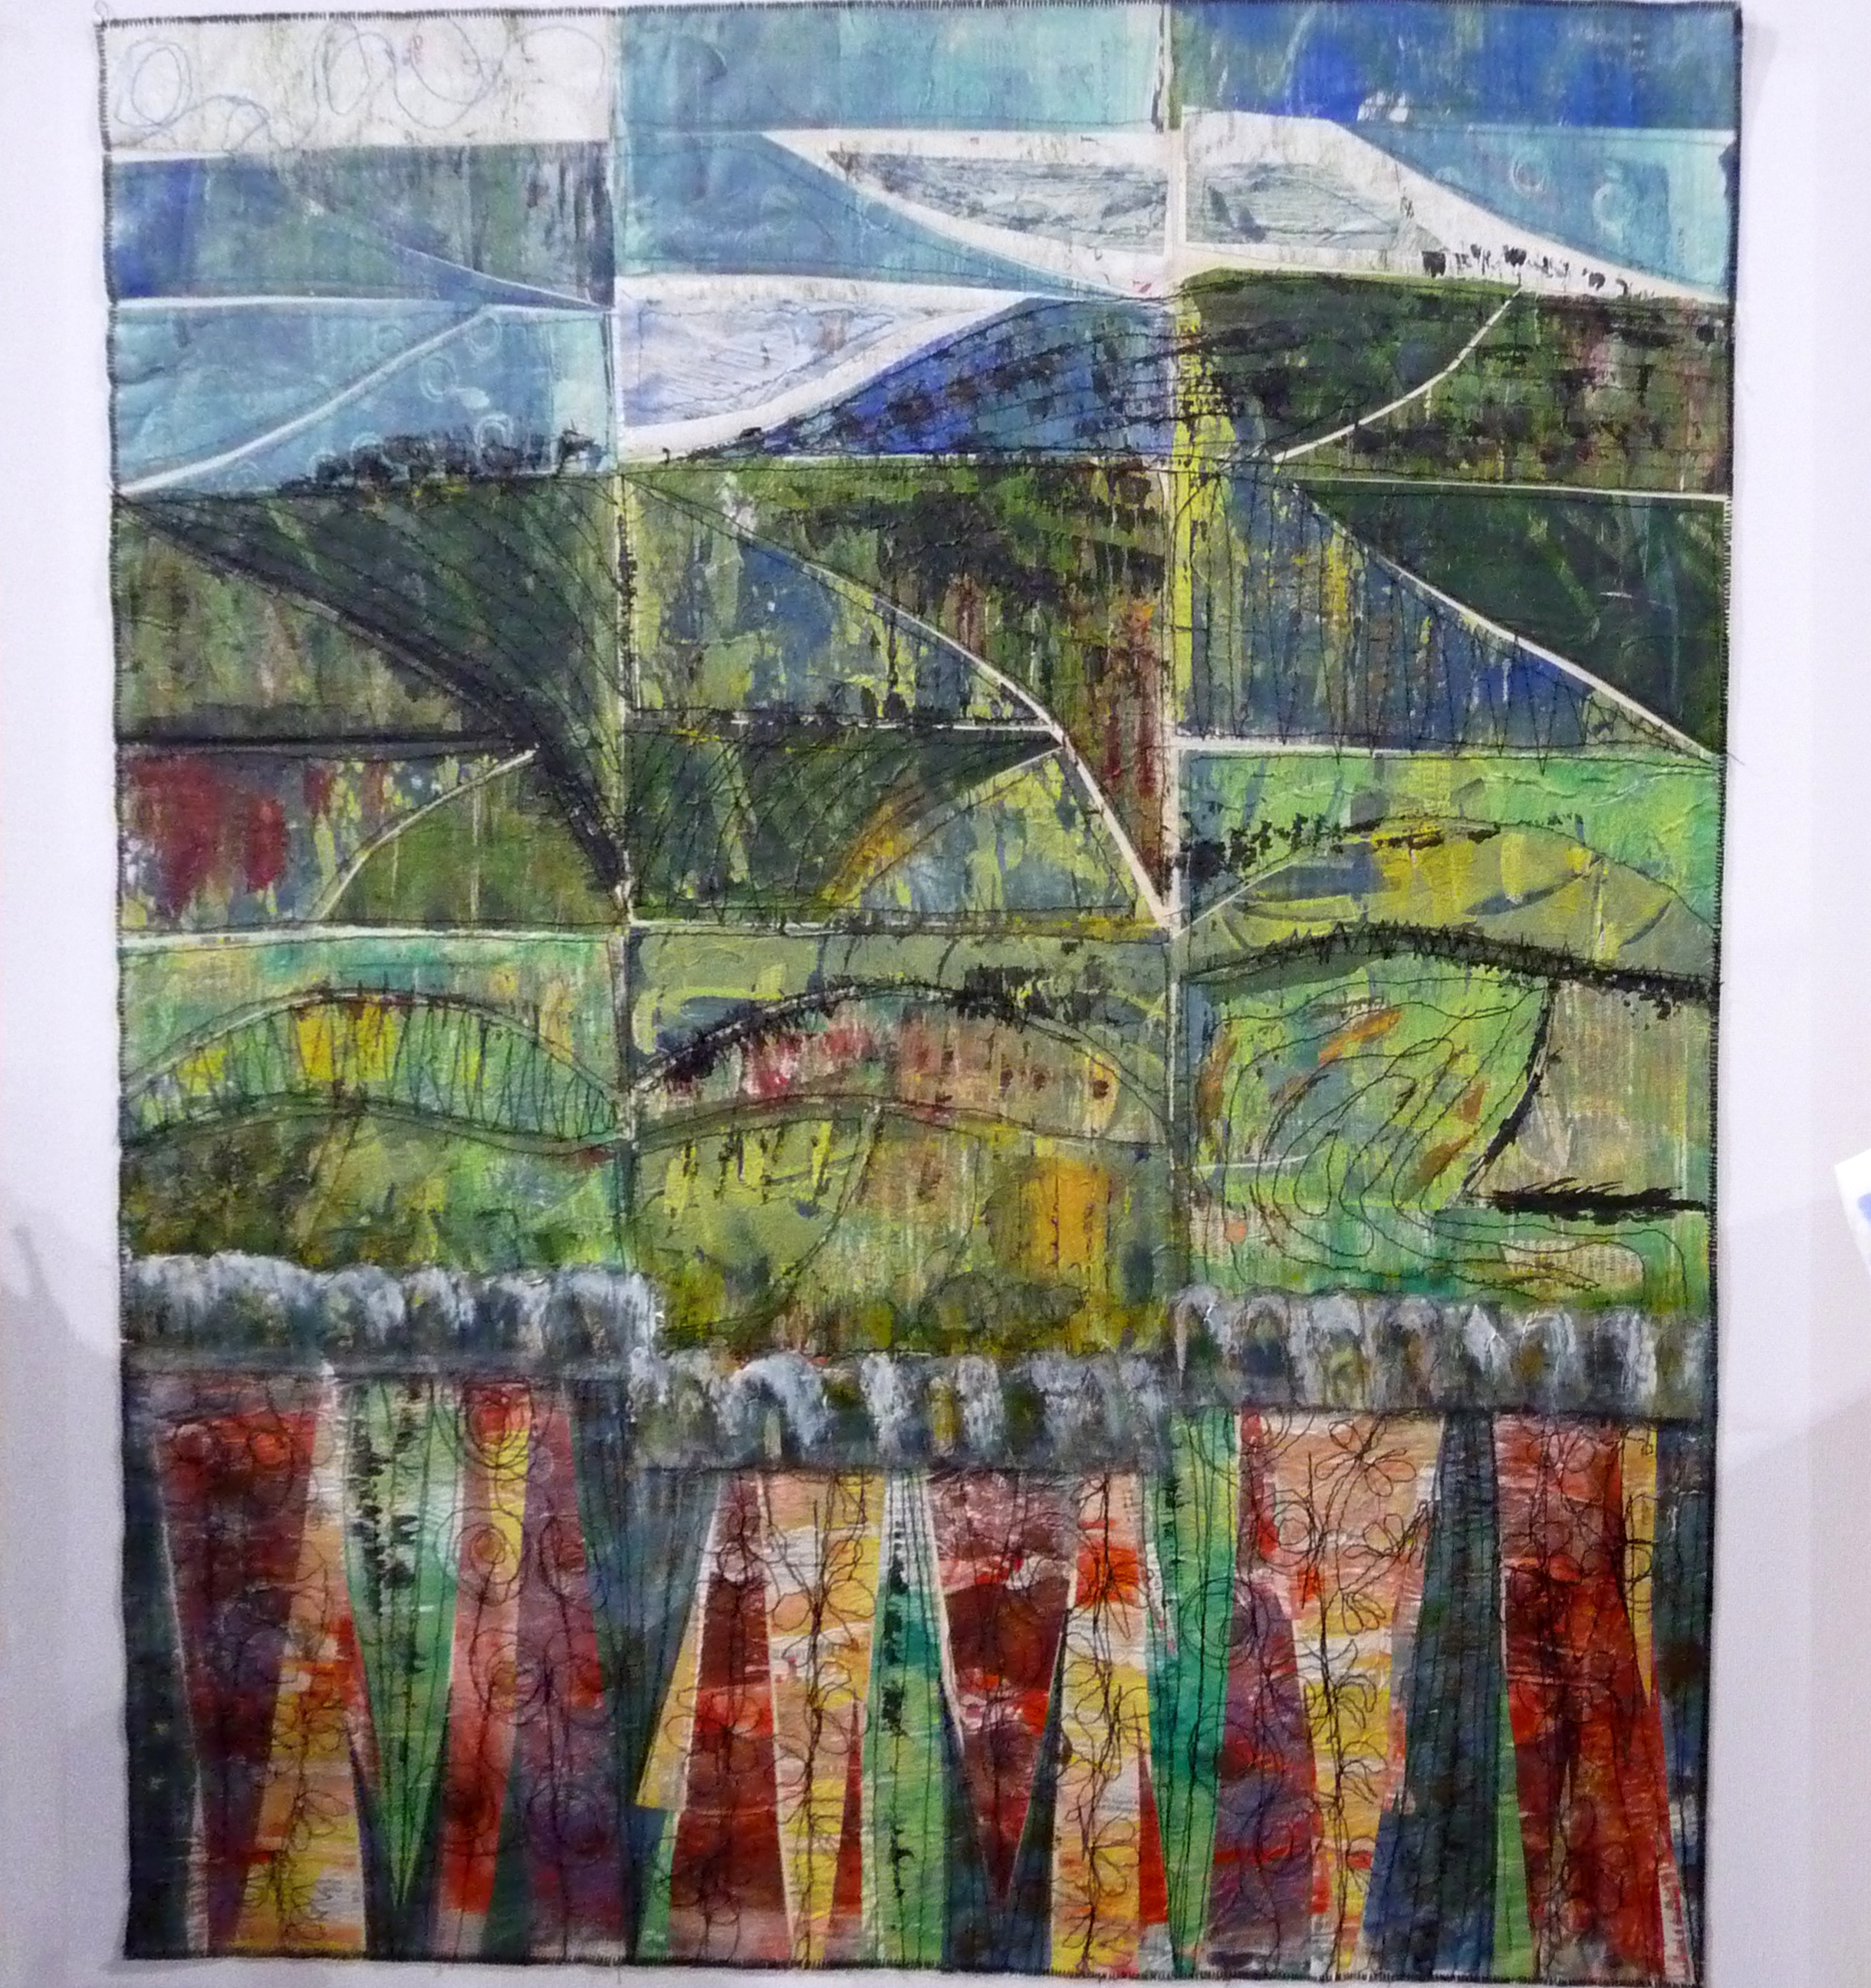 DOLWEN VIEW, Wild & Wacky, by Susan Gallacher, mixed media, acrylic, newspaper, plywood